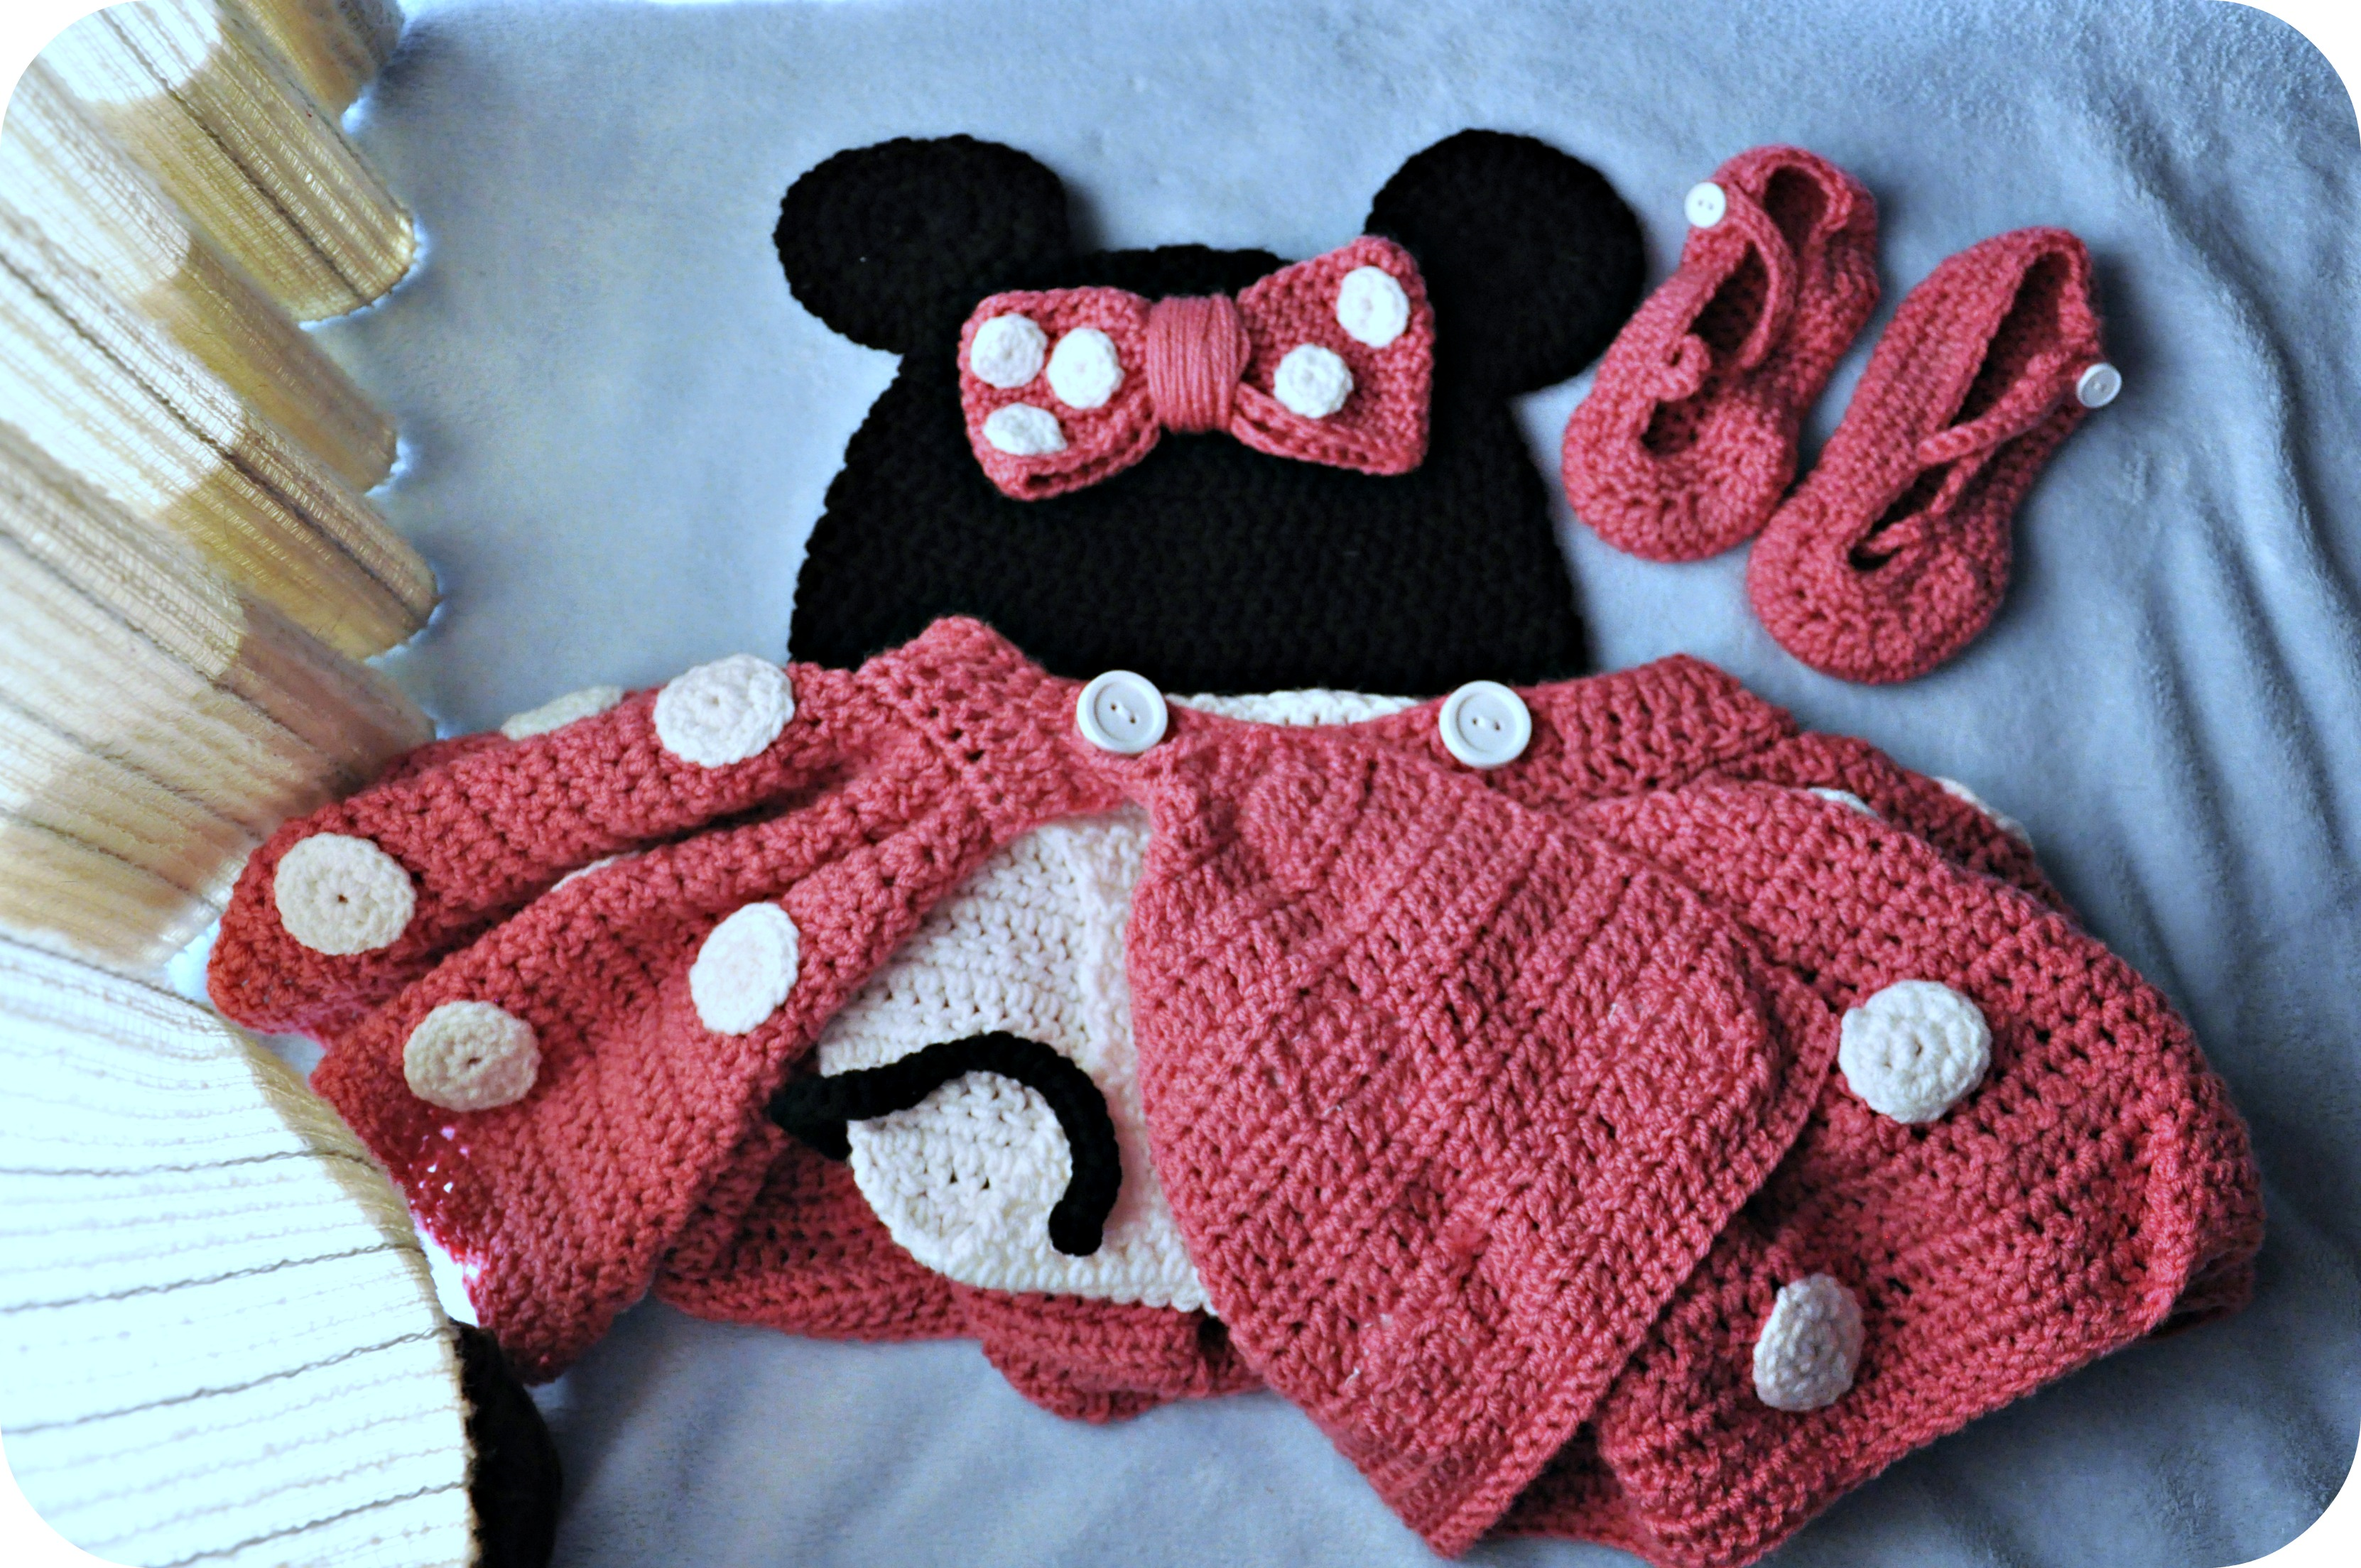 Free Crochet Pattern For Baby Minnie Mouse Outfit : Crochet Mustache Military Bride